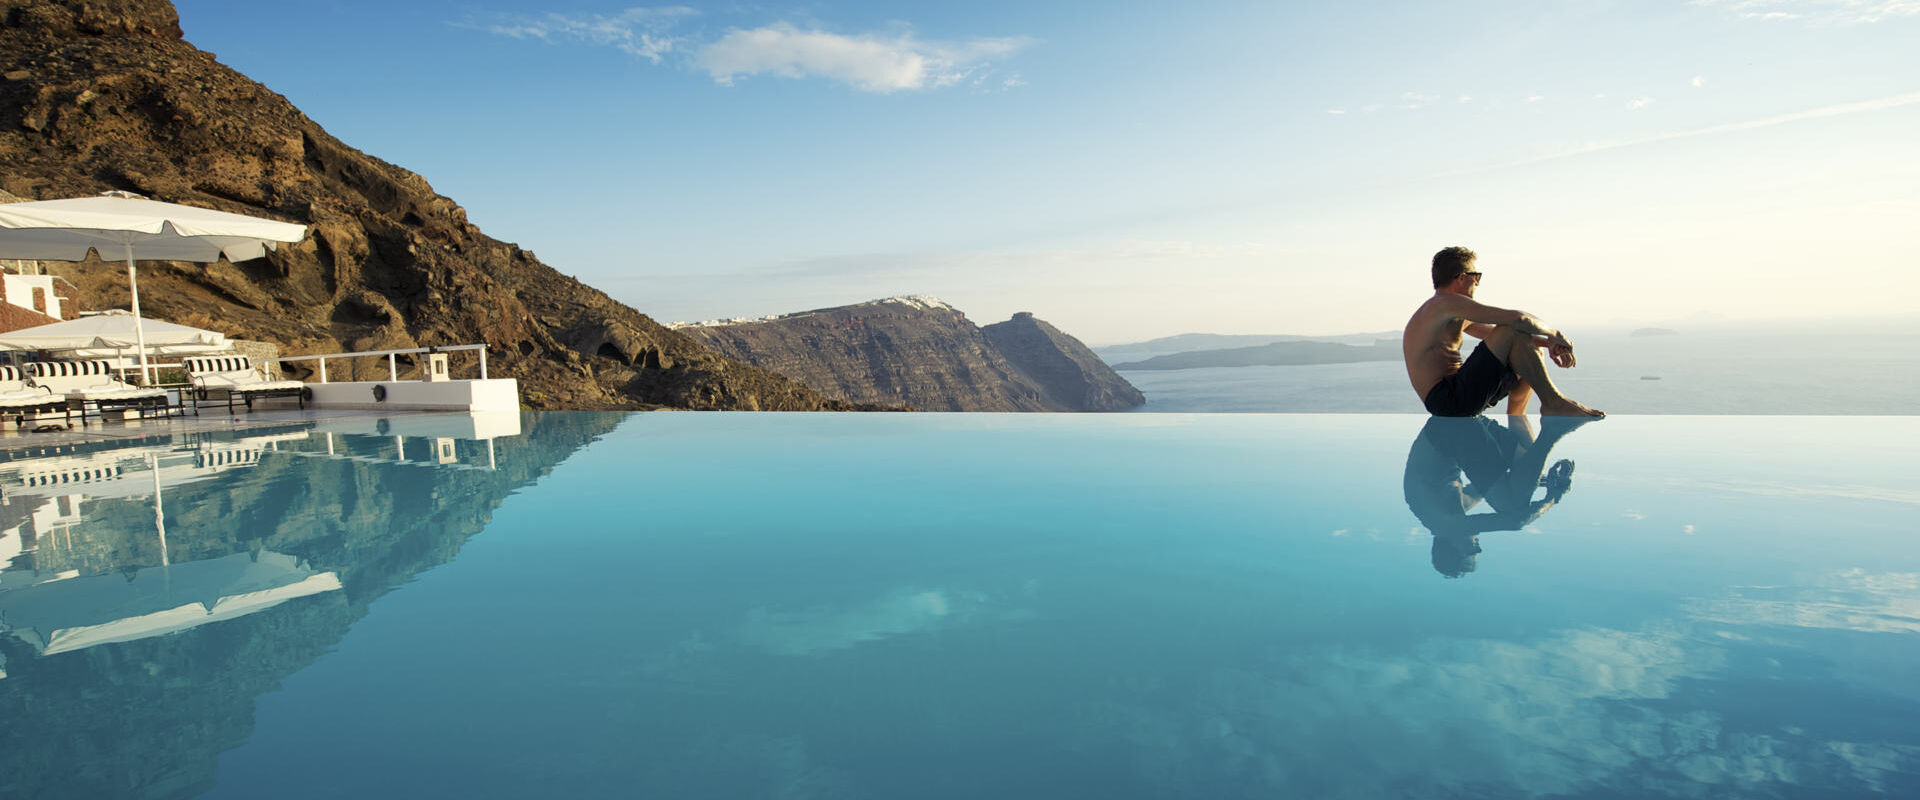 Pool in Santorini, Greece